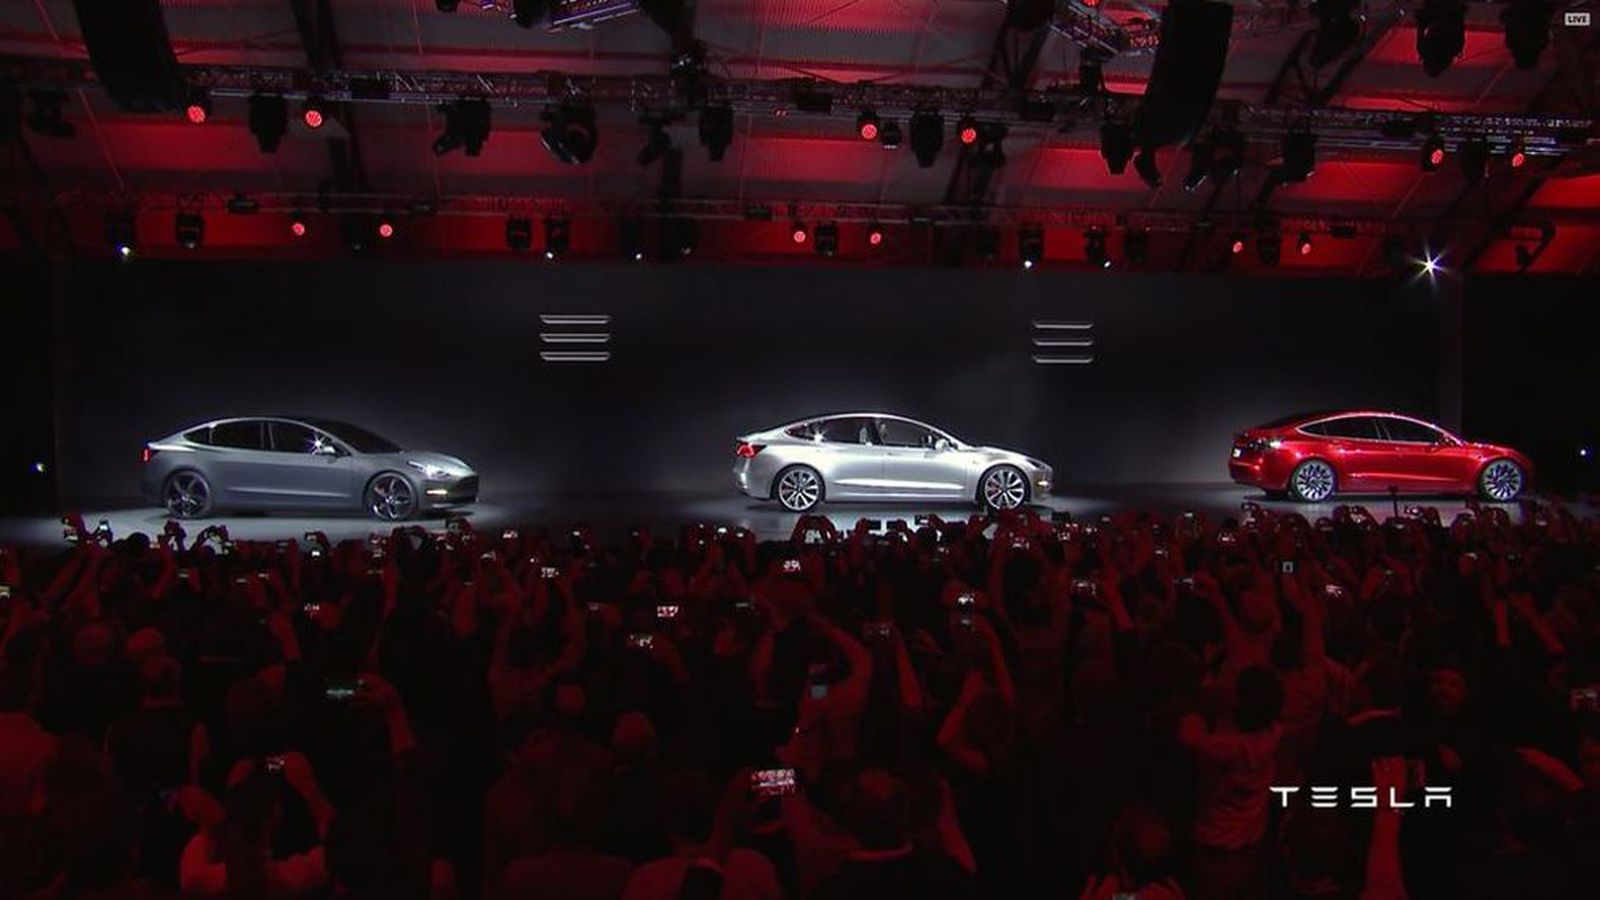 How to watch tonight's Tesla Model 3 party live